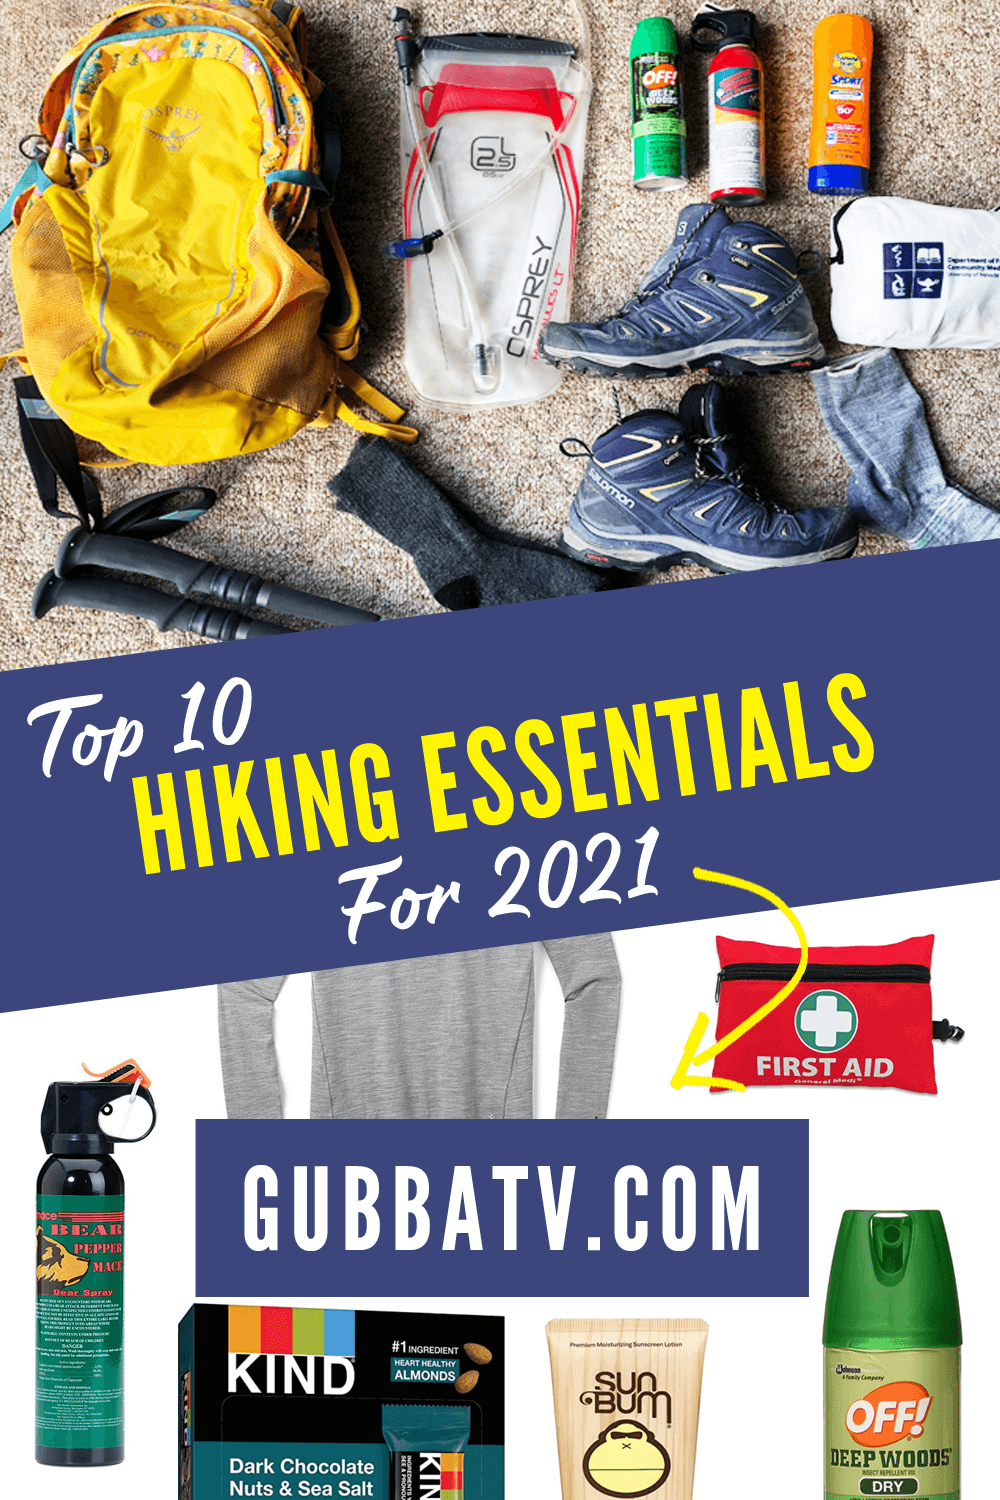 Top 10 Hiking Essentials For 2021